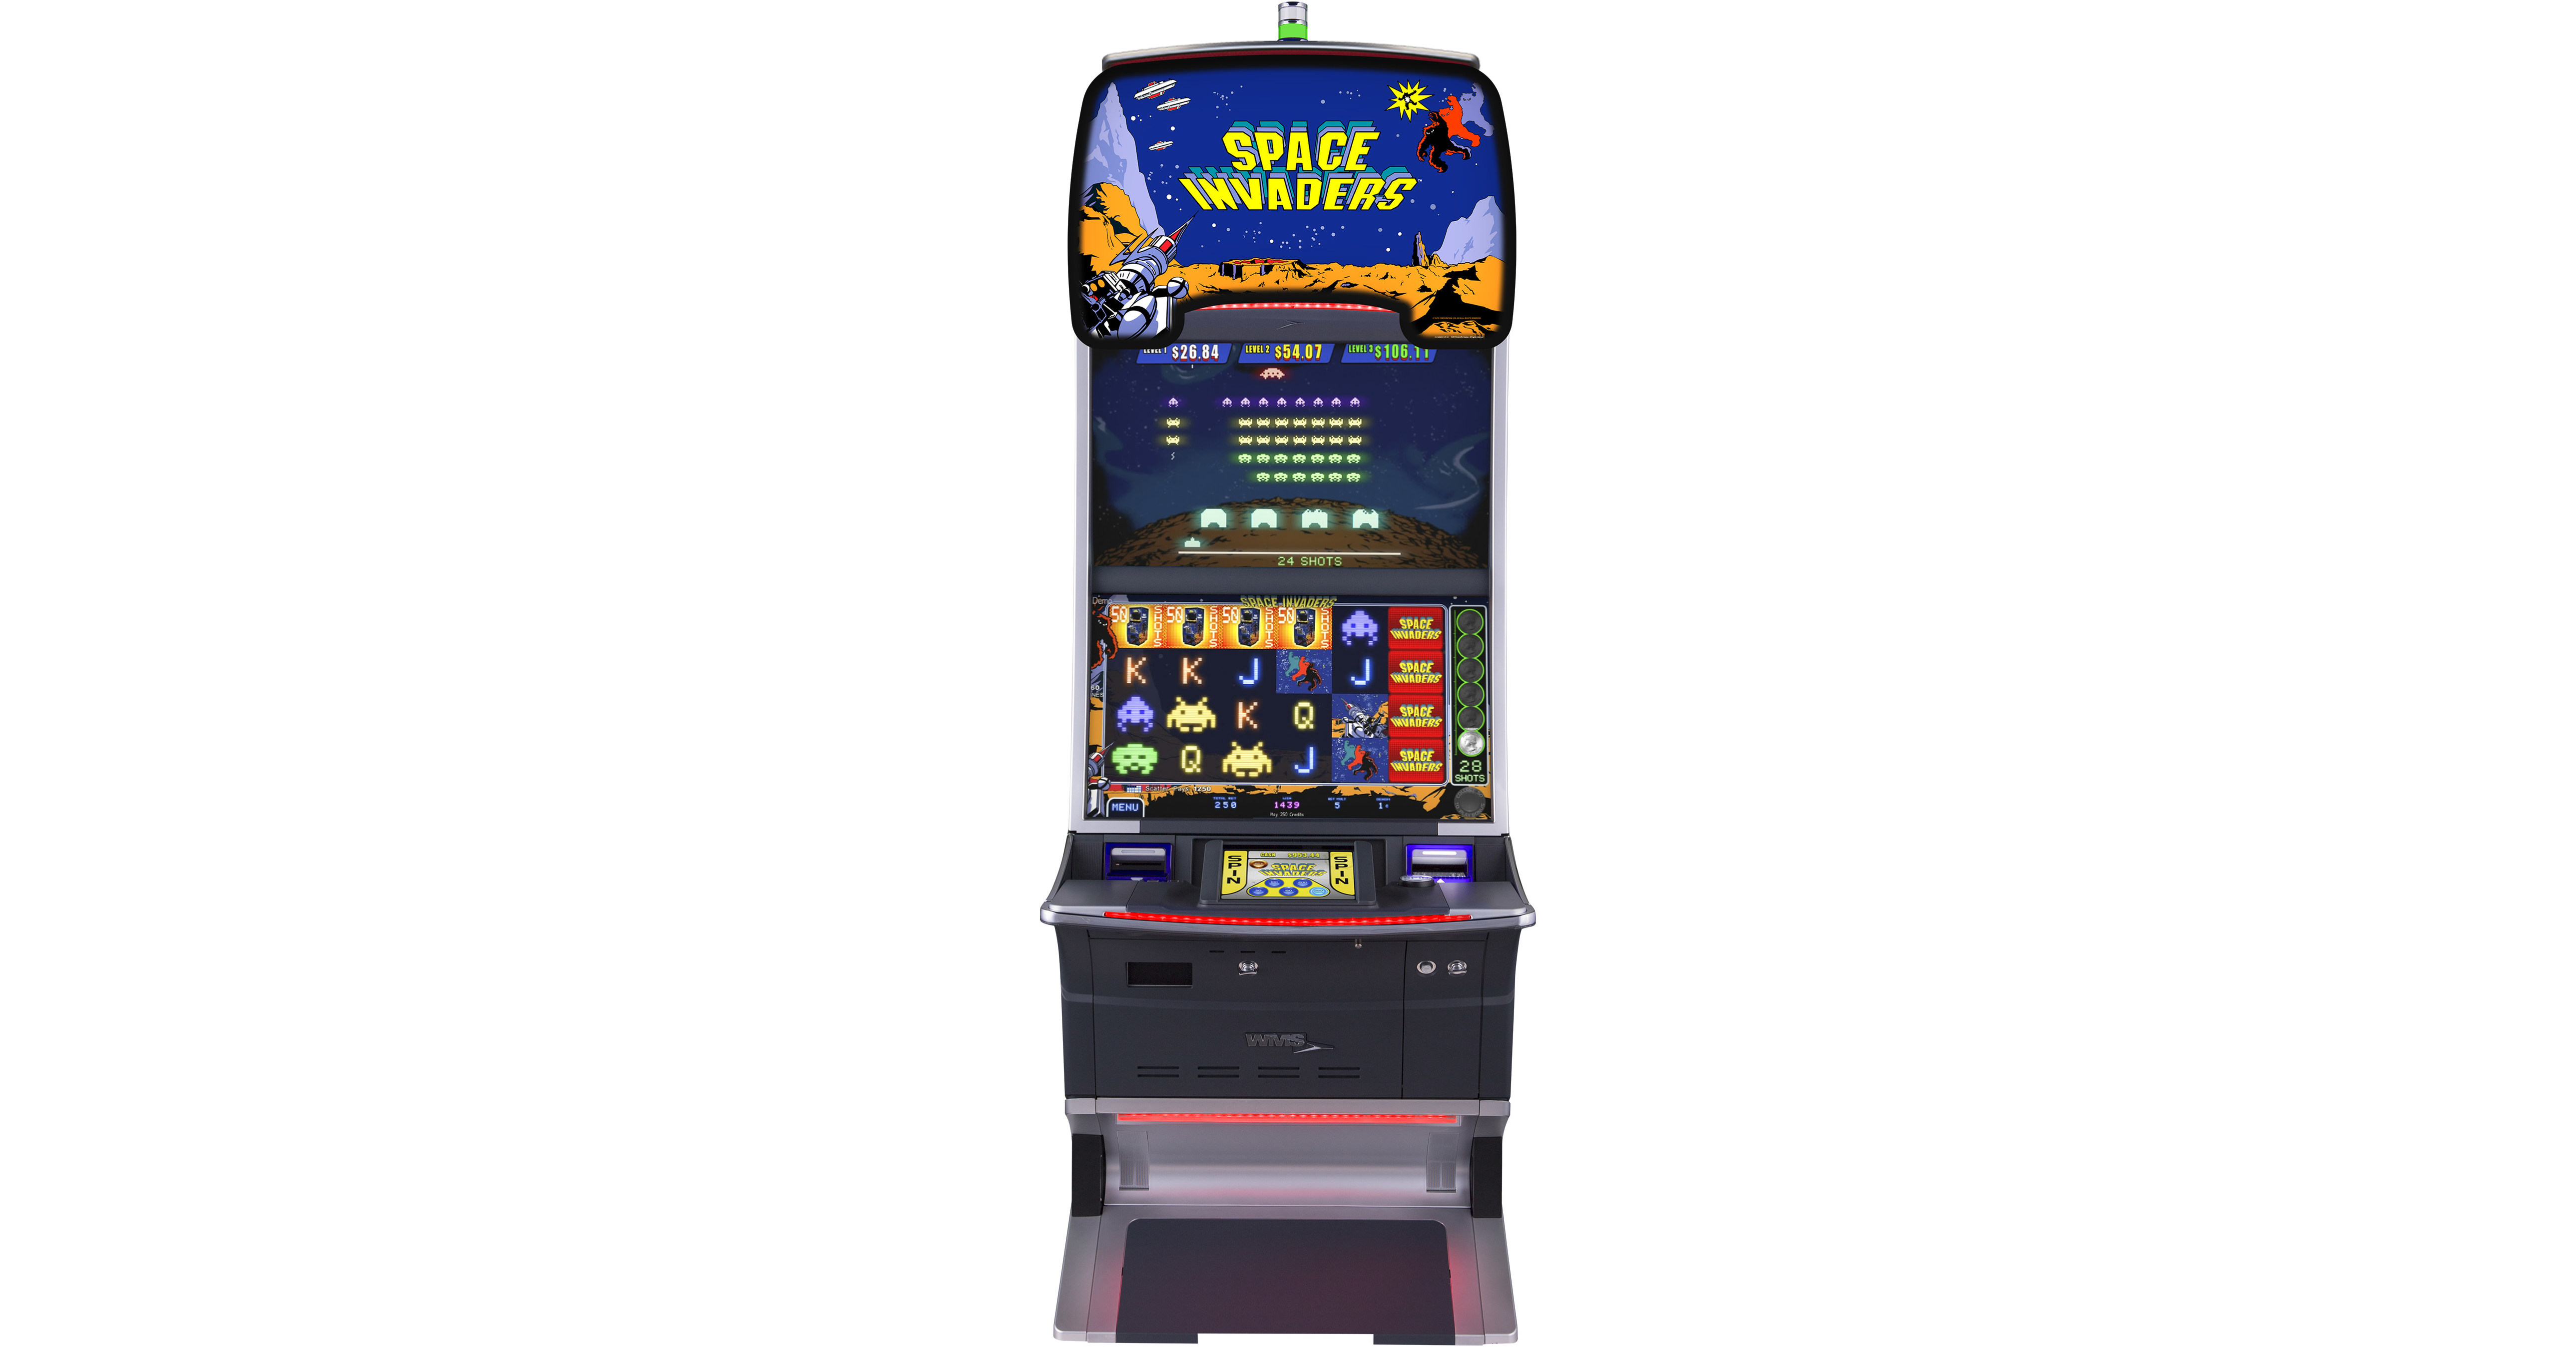 Proposed deal to swap old gaming permits for slot machines